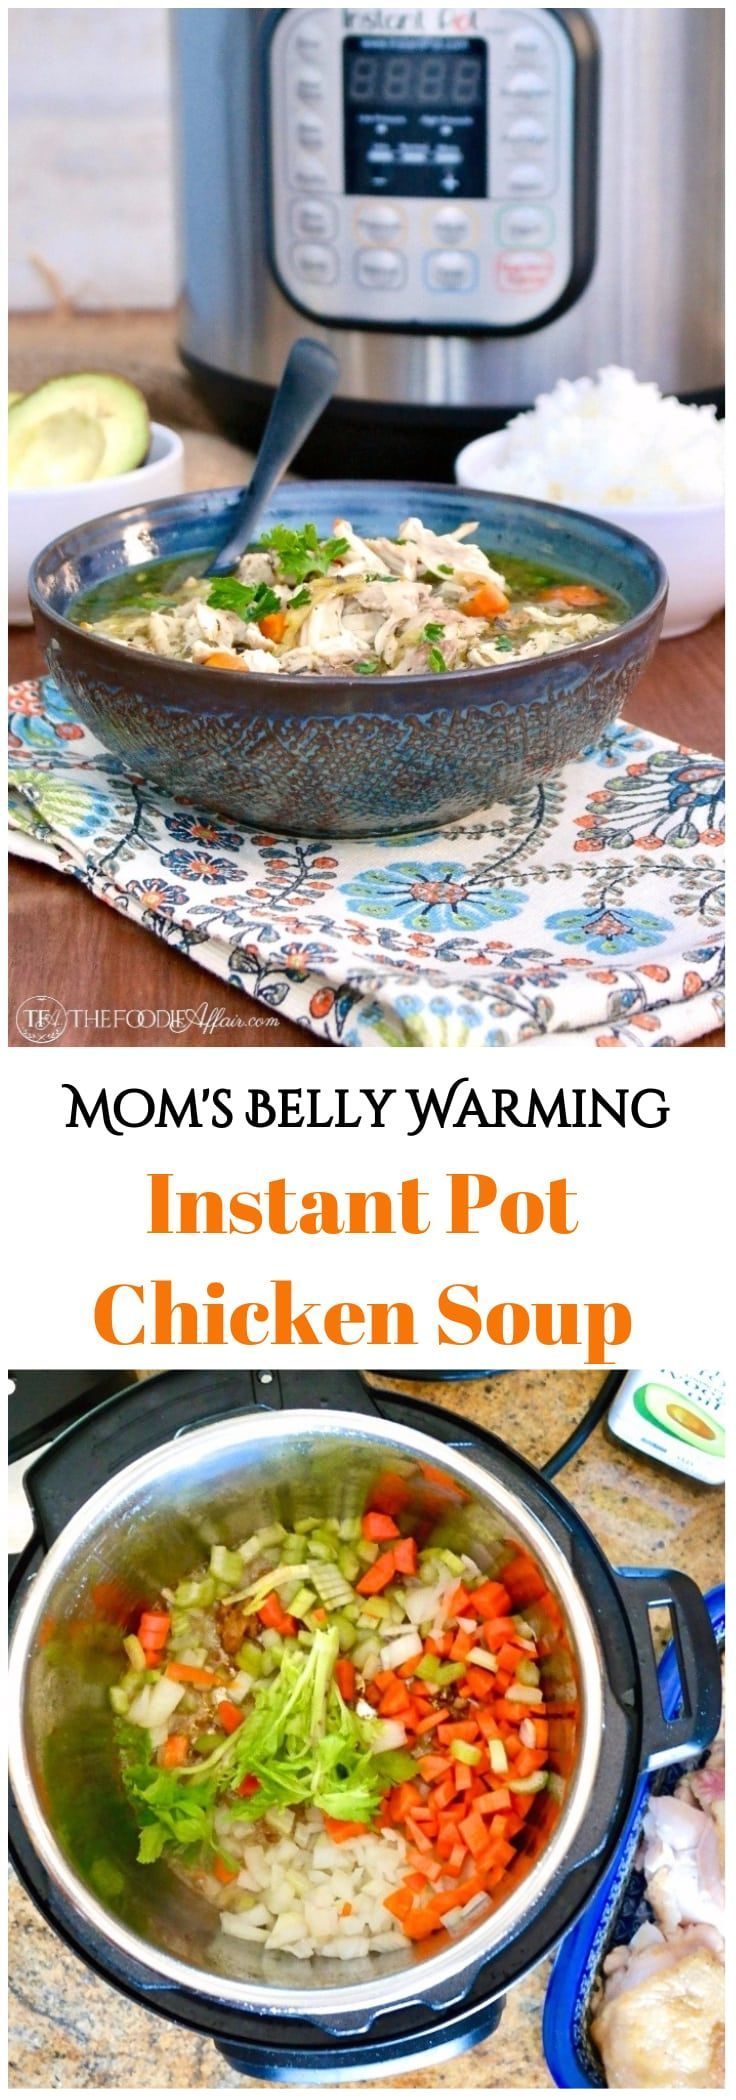 Quick, simple, and nutritious Instant Pot Chicken Soup with chopped veggies. Mom approved belly soothing soup to beat the cold and flu season!